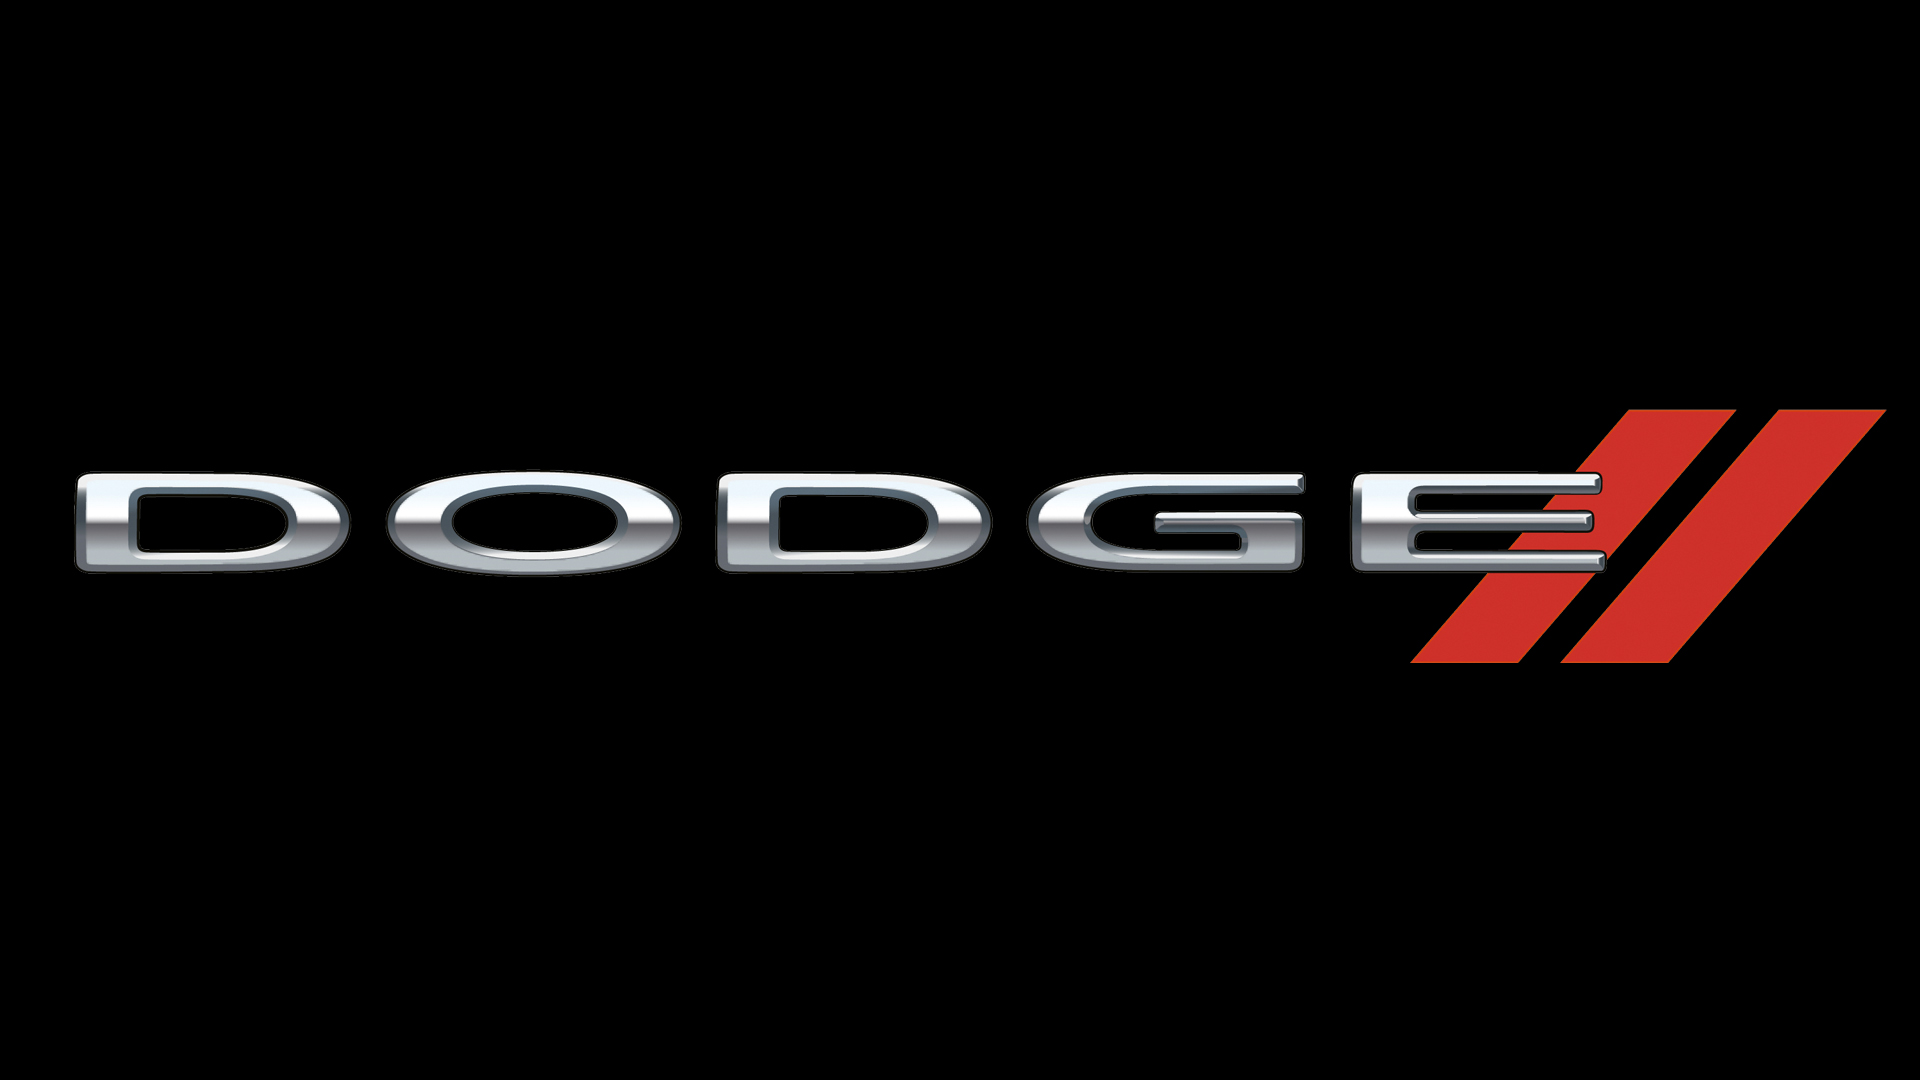 dodge logo  dodge symbol  meaning  history and evolution basketball logo designer basketball logo designs